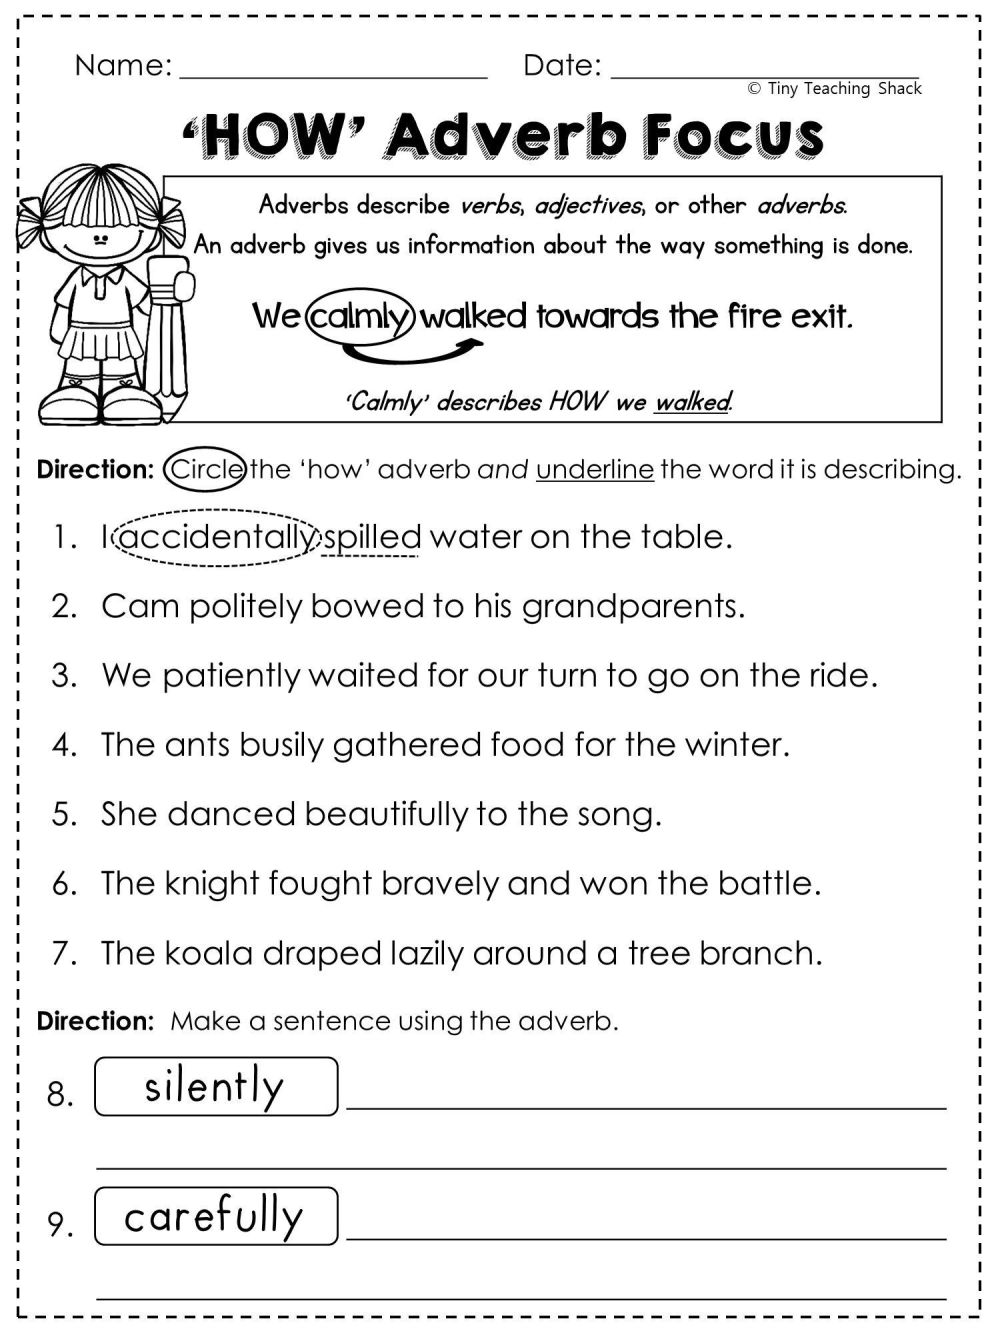 medium resolution of 8 Best 4th Grade English Worksheets Adjectives images on Best Worksheets  Collection